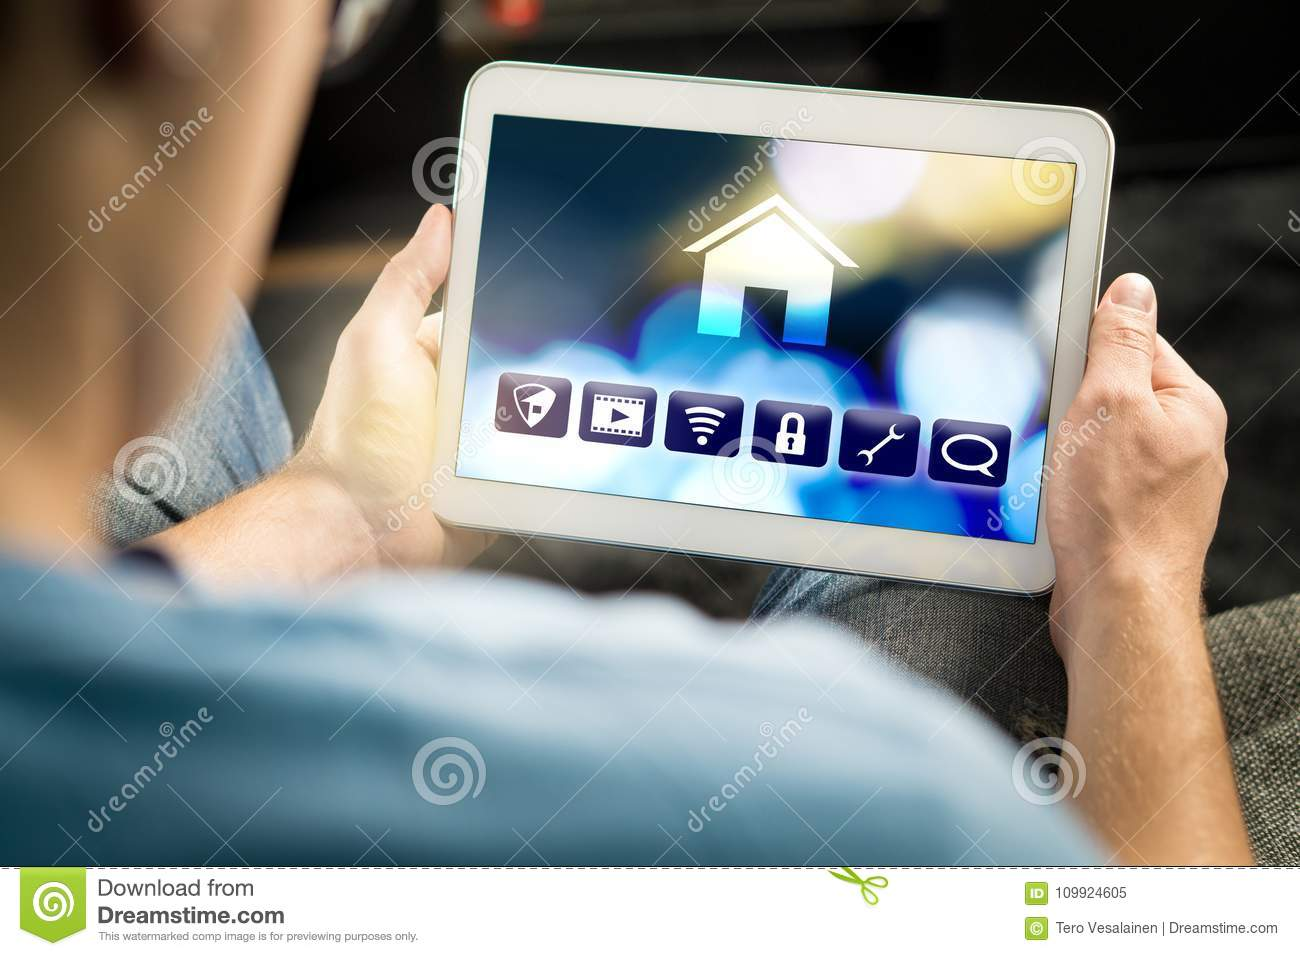 Man using smart home application in tablet to control house